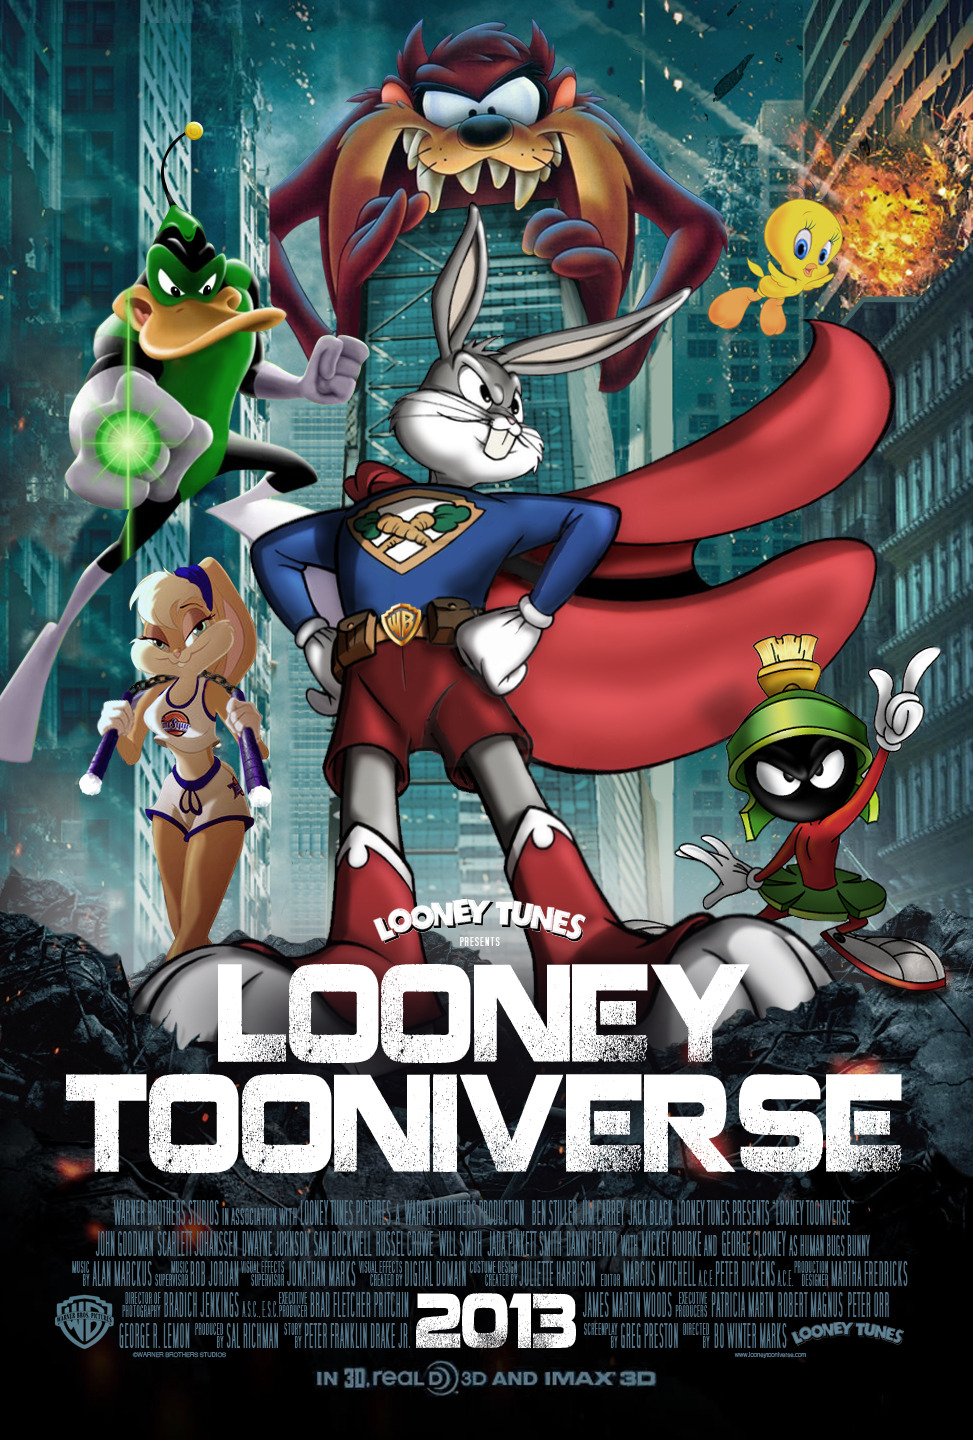 Feature Film pitch to Warner Brothers Studios for the animated feature film LOONEY TOONIVERSE.